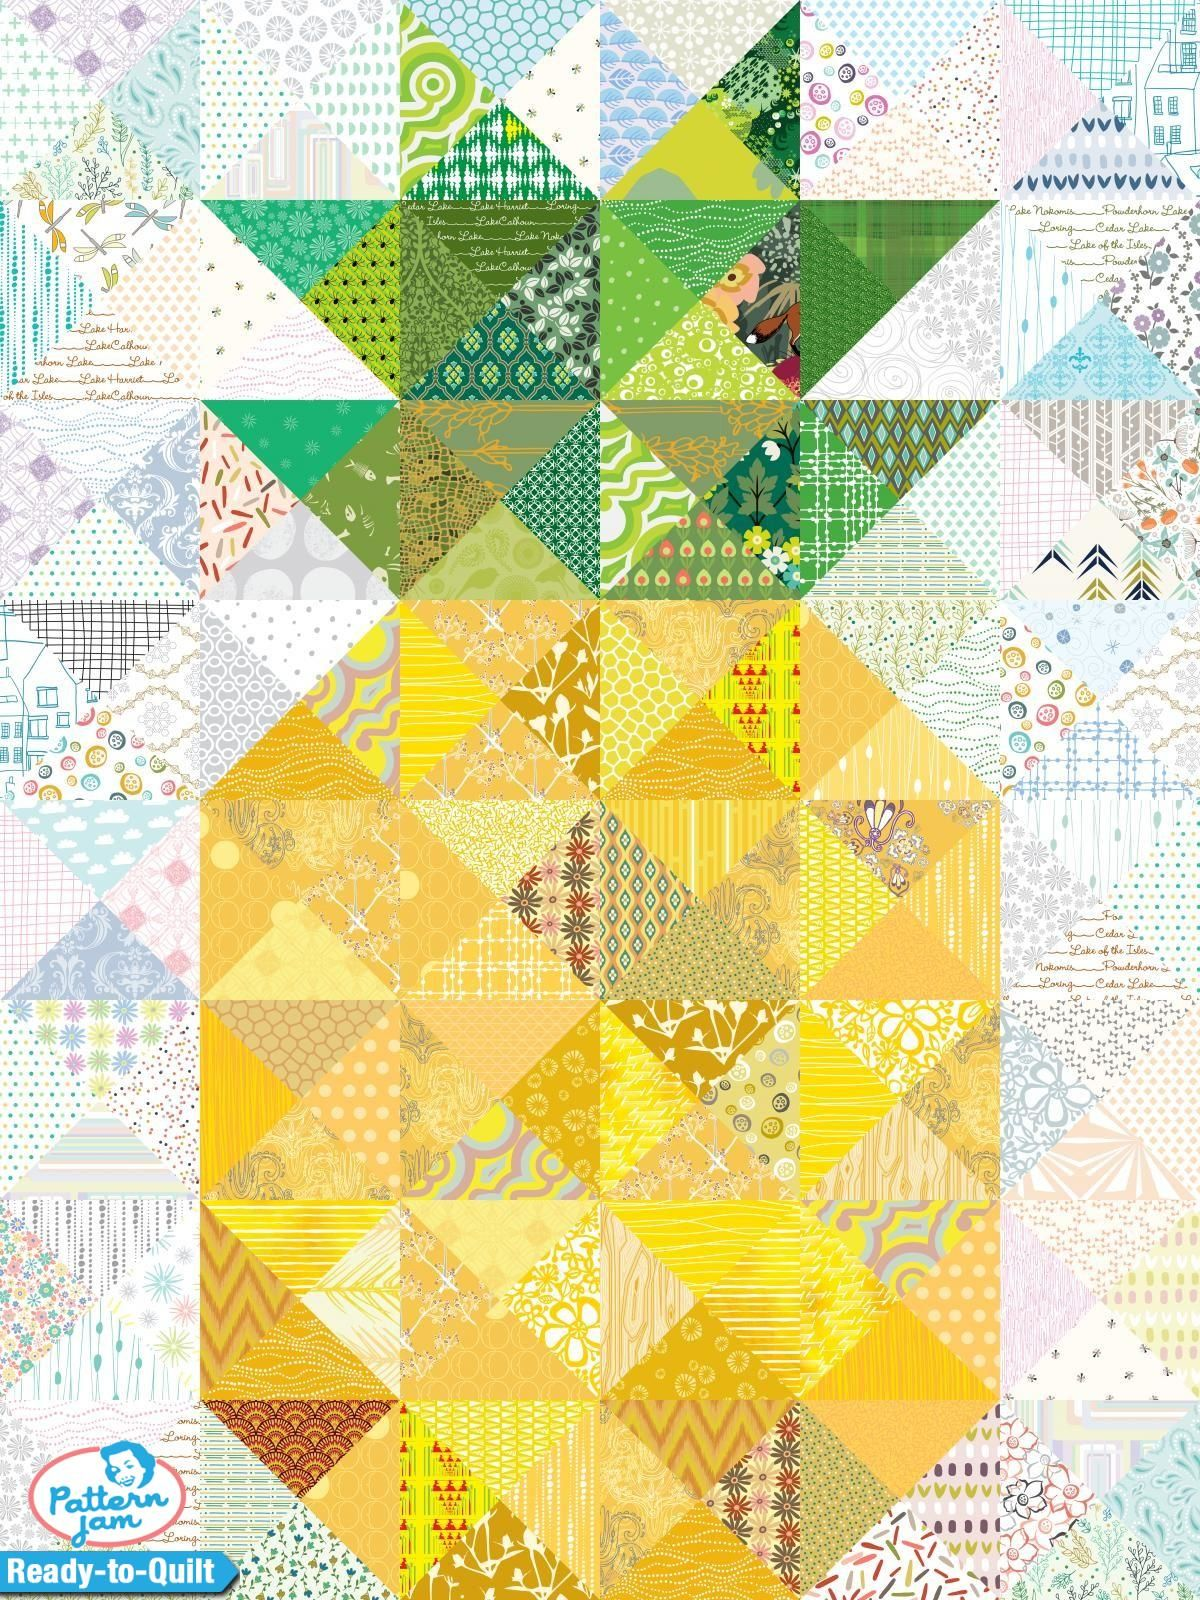 The Pine Apple - custom Ready-to-Quilt design created by ... : pineapple quilt tutorial - Adamdwight.com